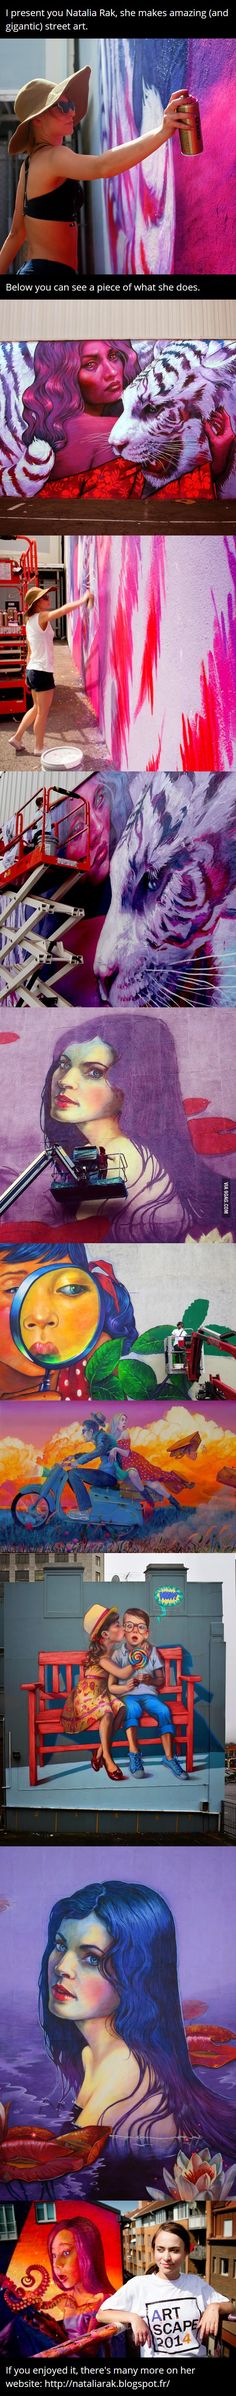 Natalia Rak, she makes street art - 9GAG